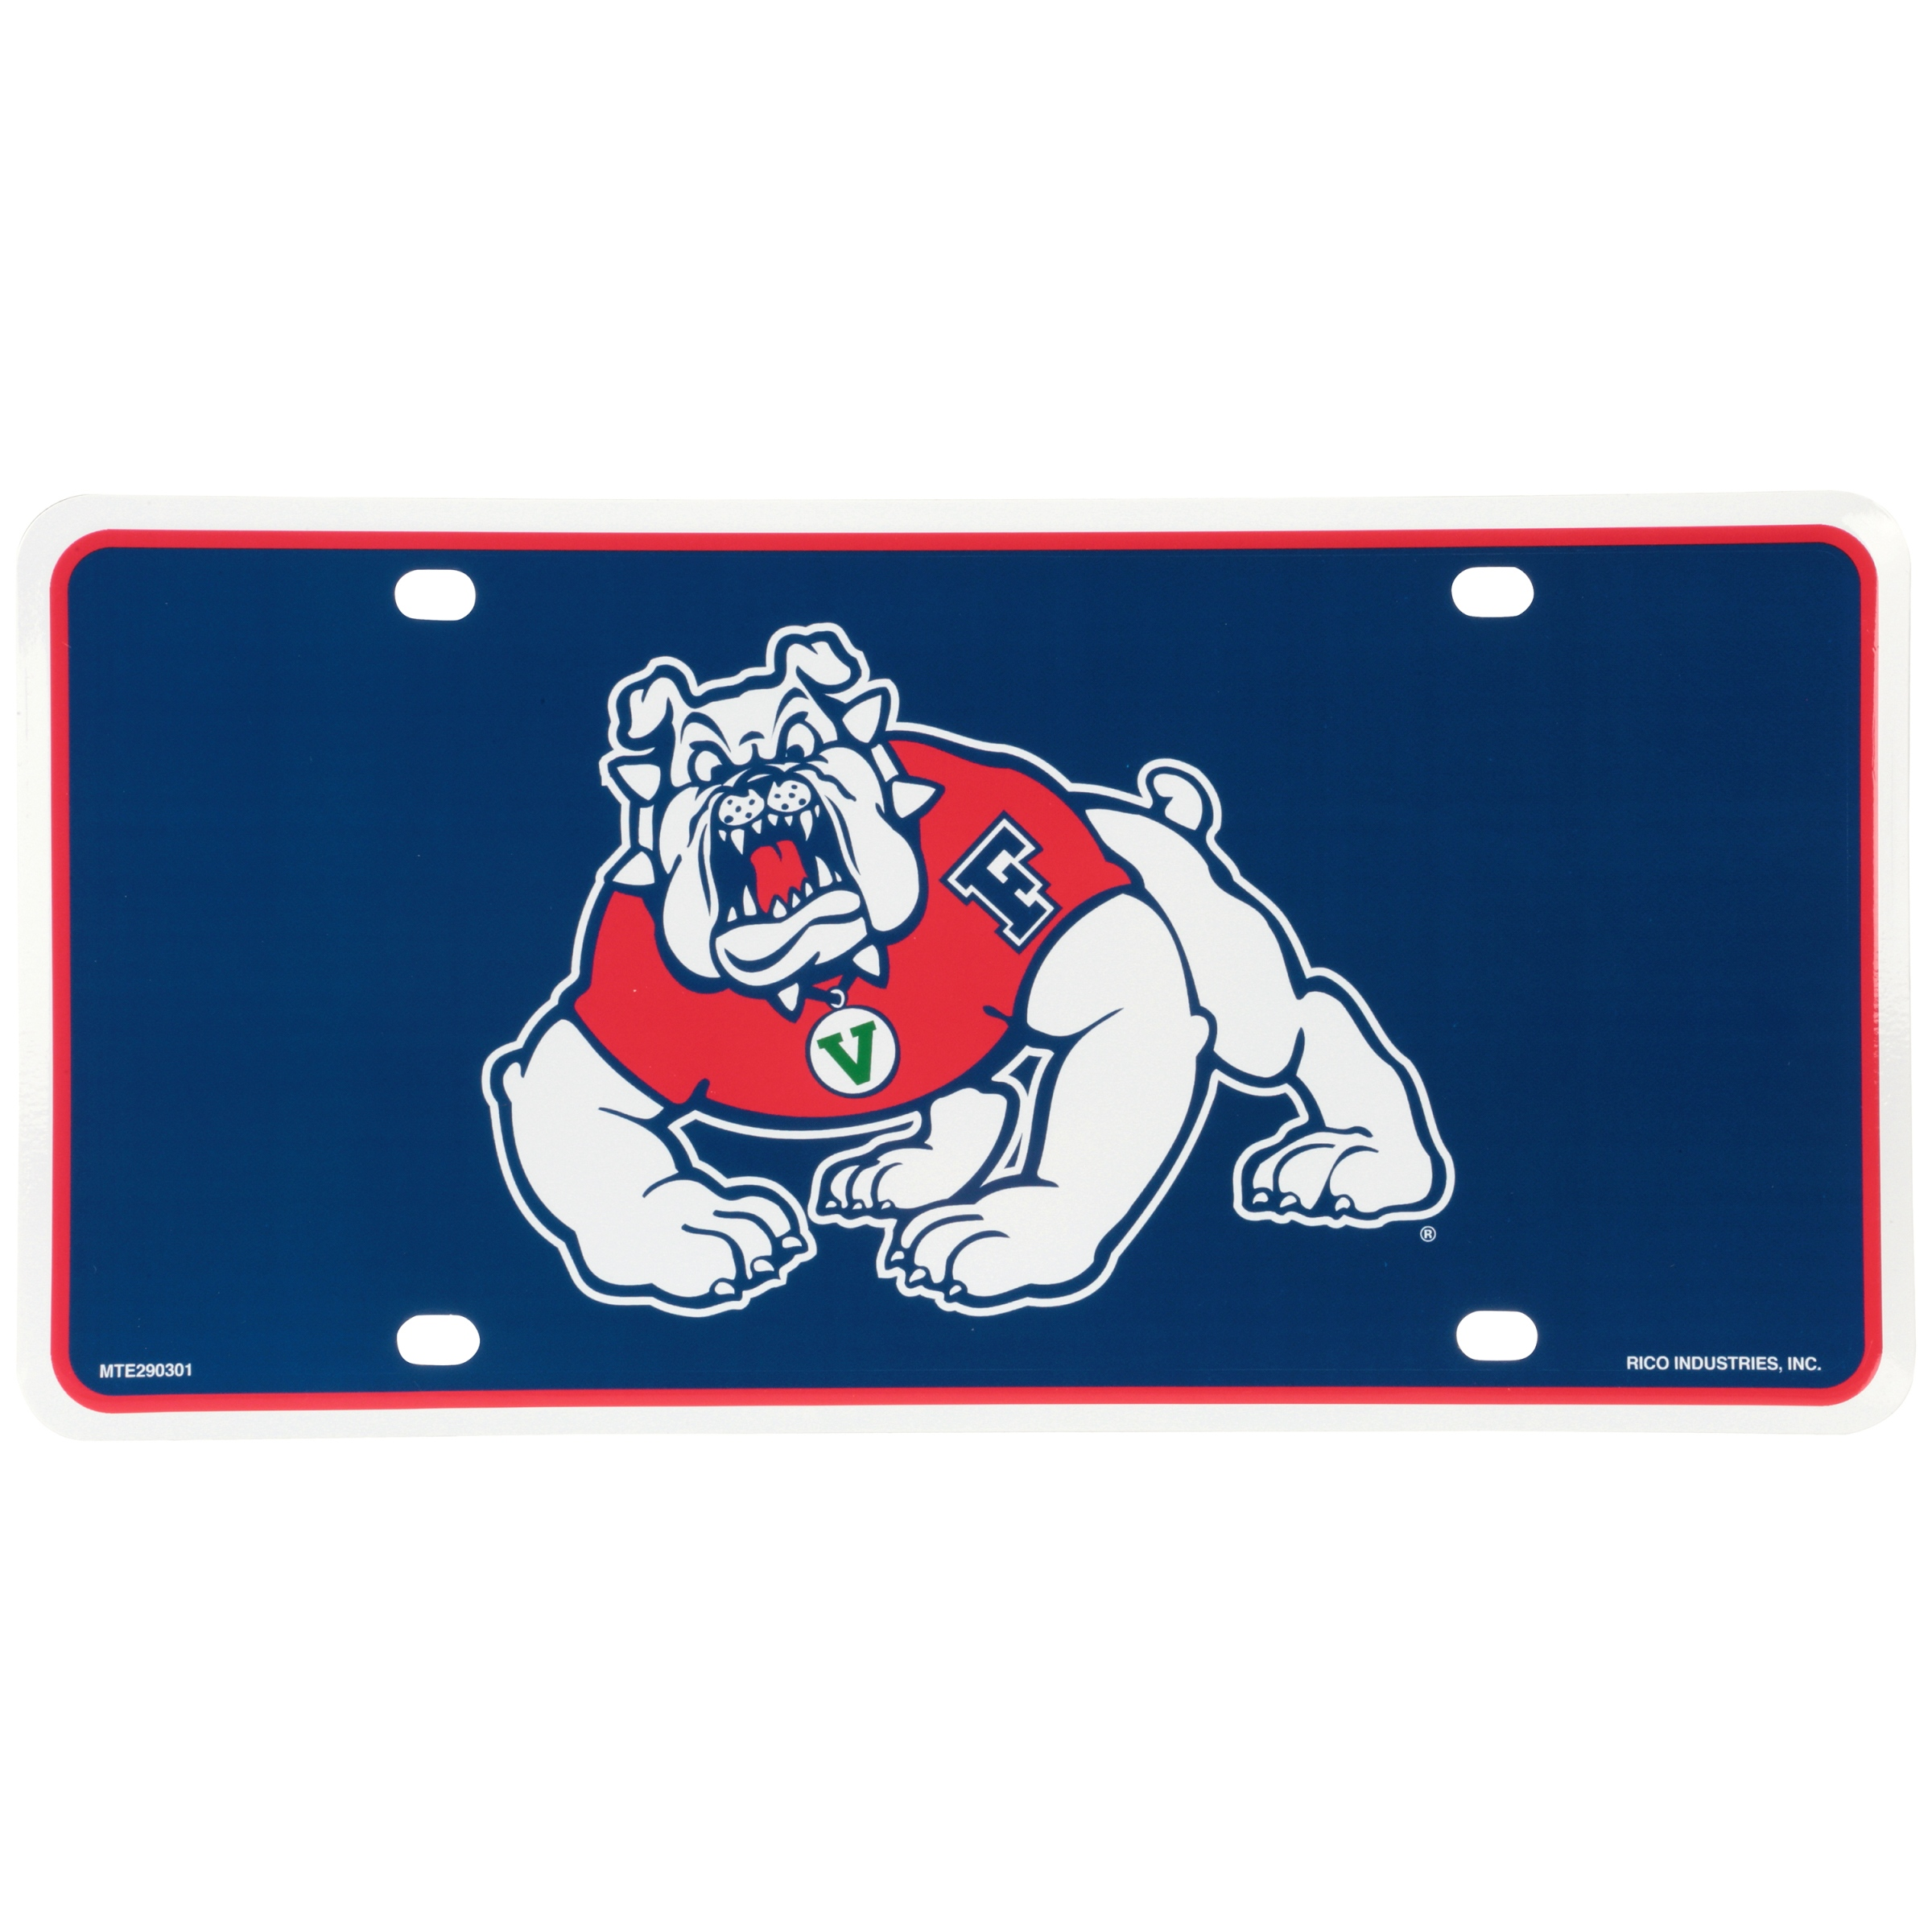 Rico Industries Fresno State Bulldogs License Plate